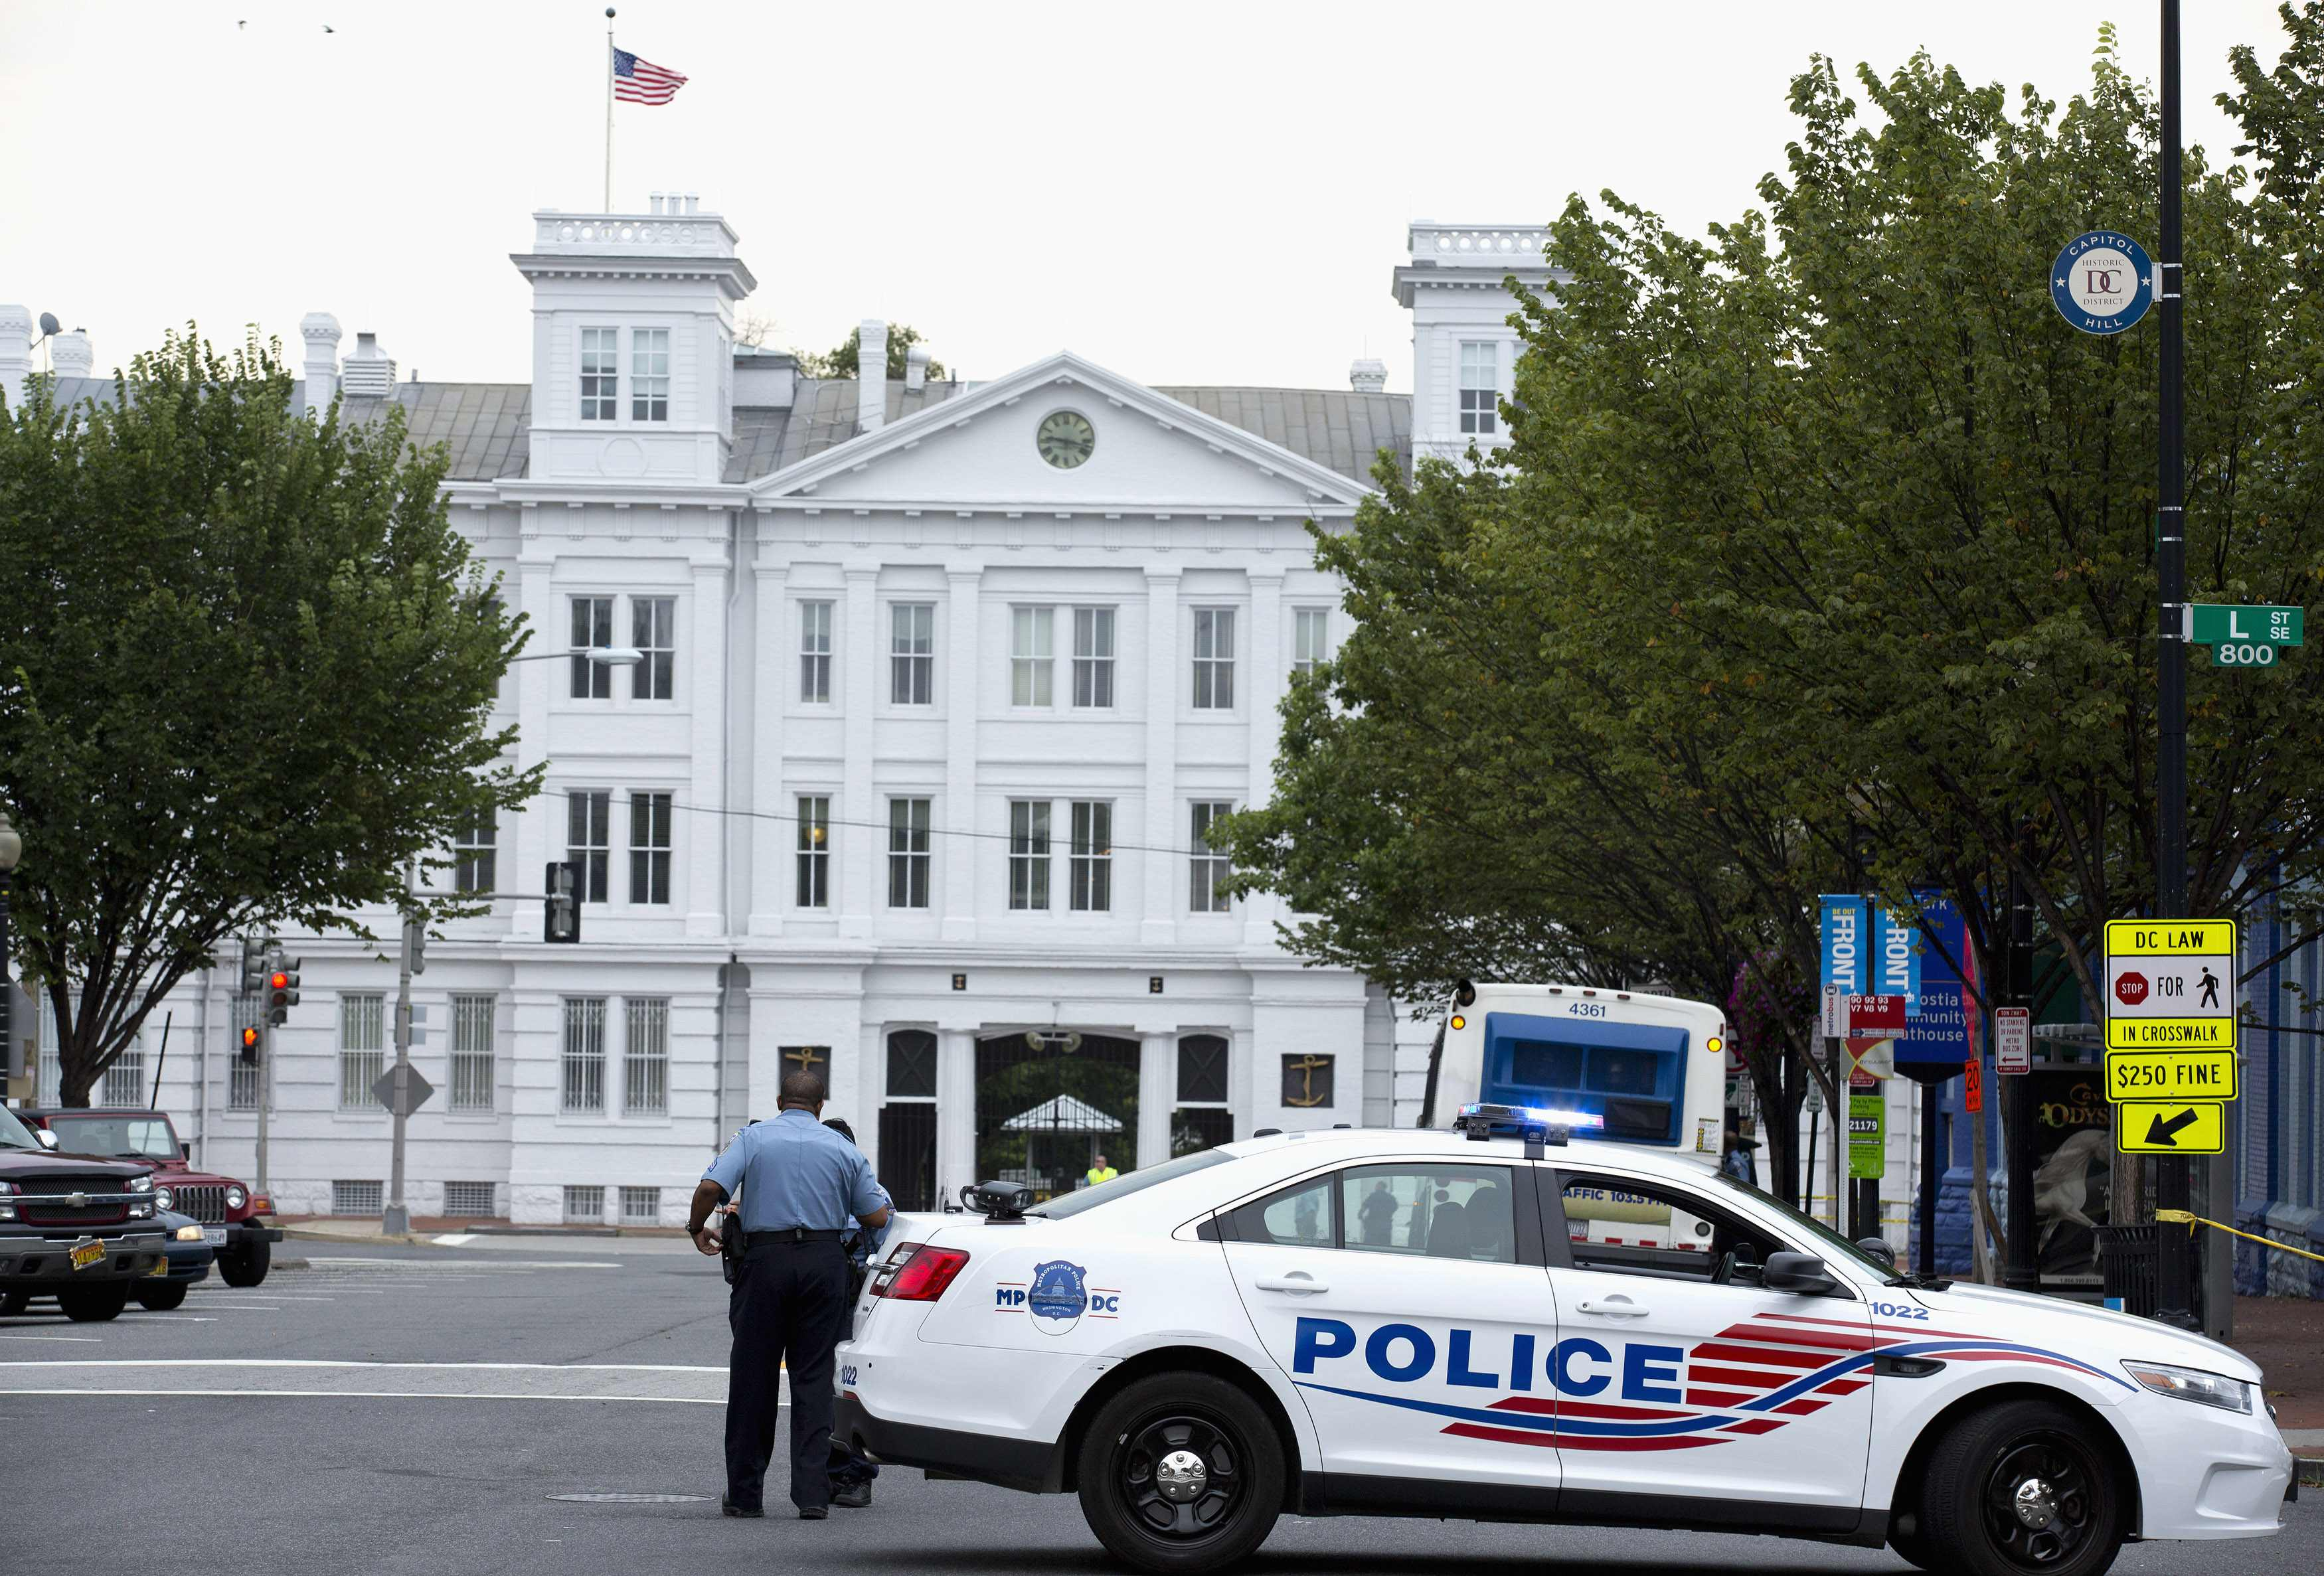 A police vehicle is seen as police respond to a shooting at the Washington Navy Yard, in Washington